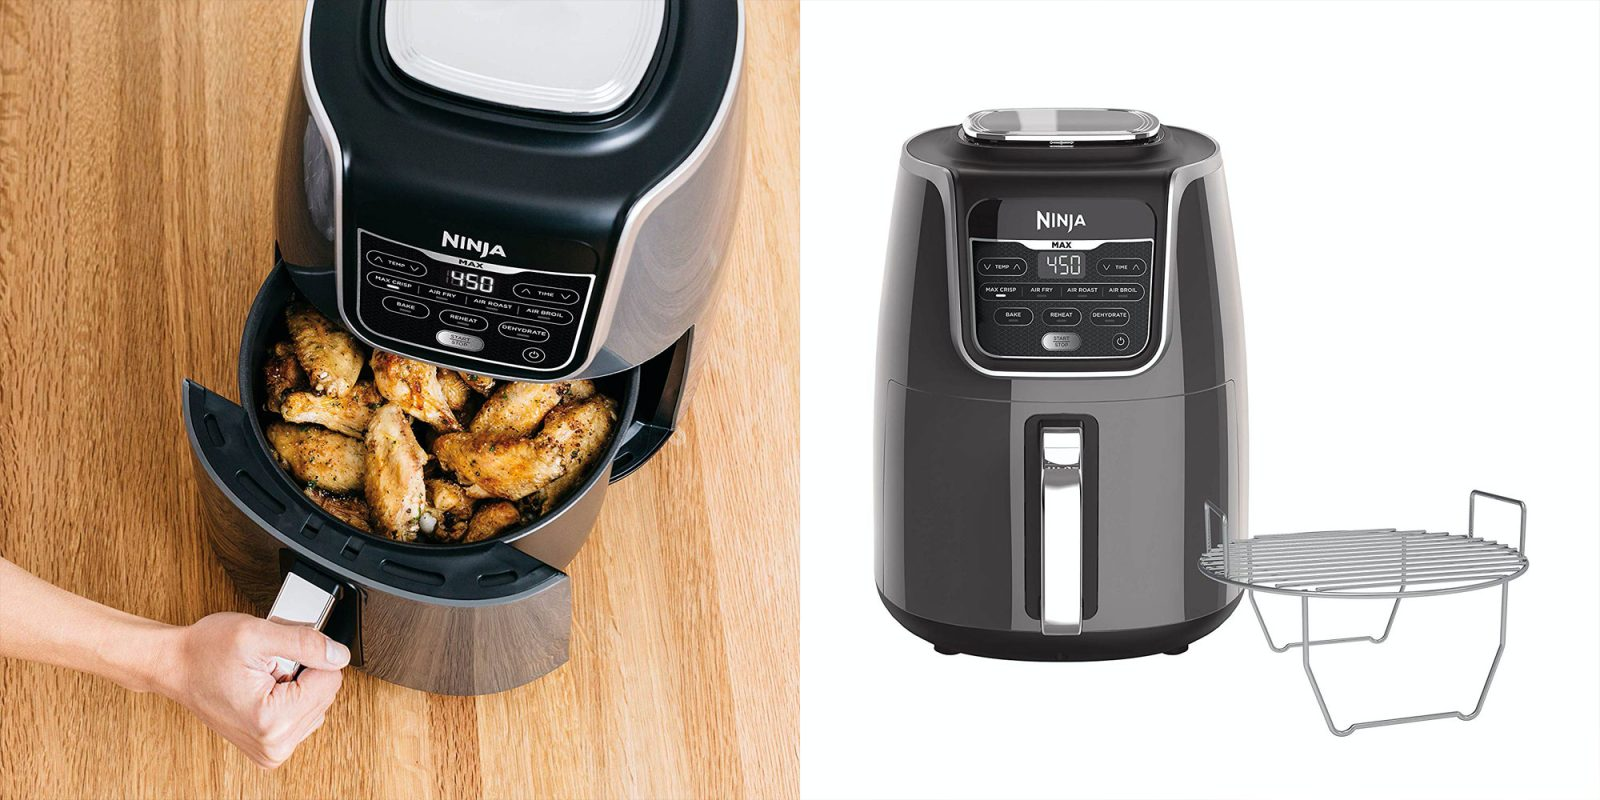 Ninja's 5.5-Qt. air fryer is ready to feed the family at $120 (Reg. $170)